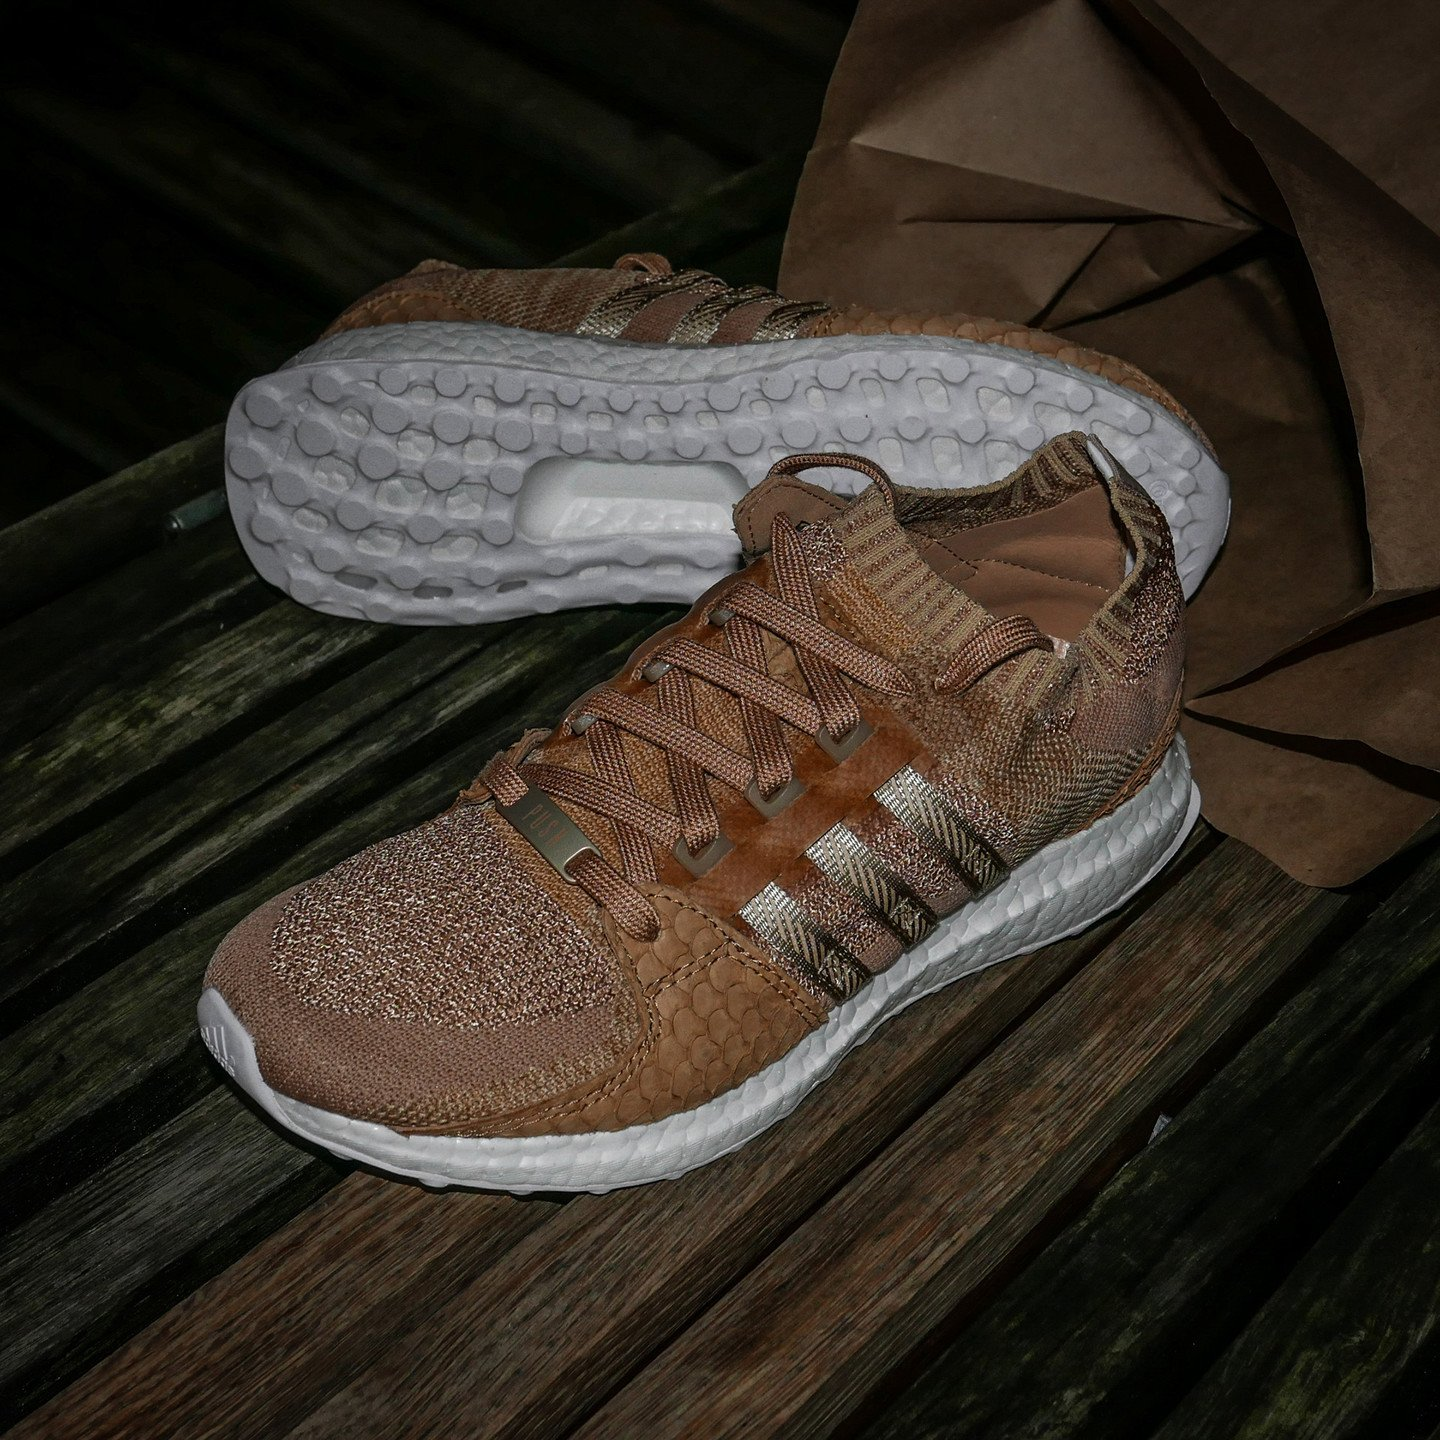 Adidas EQT Support Ultra PK 'King Push' Bodega Brown / White DB0181